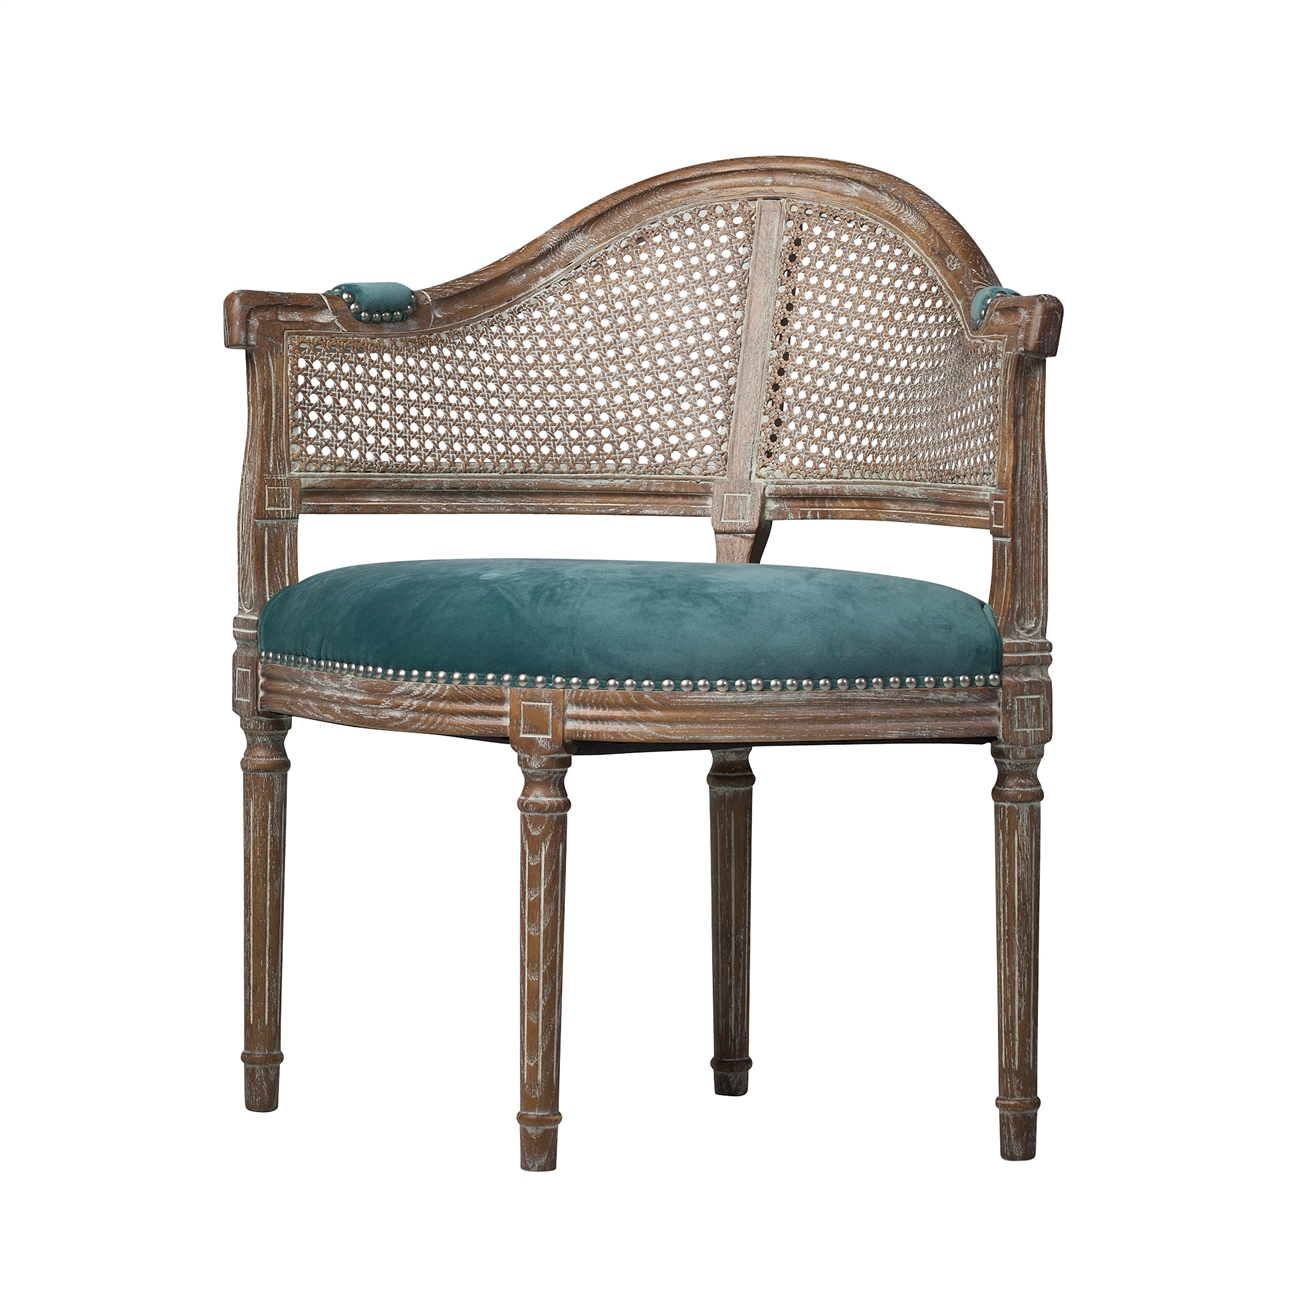 Attractive French Cane Back Occasional Chair